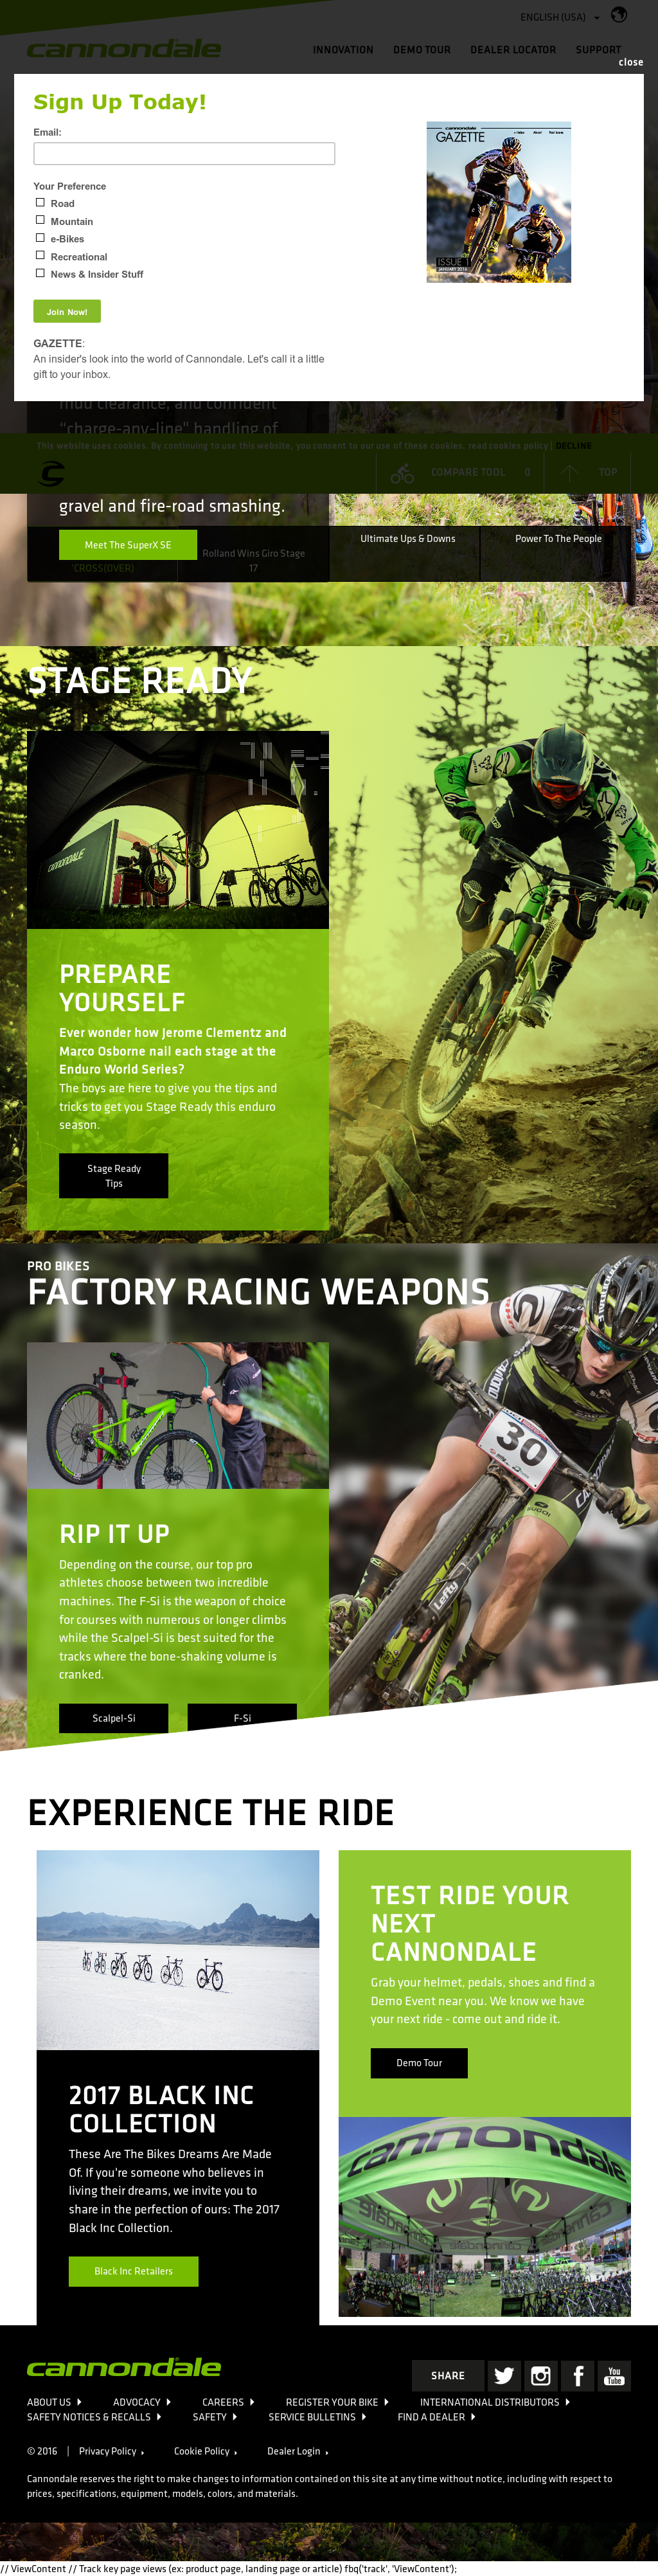 892eba118ae Cannondale Bicycle Competitors, Revenue and Employees - Owler Company  Profile